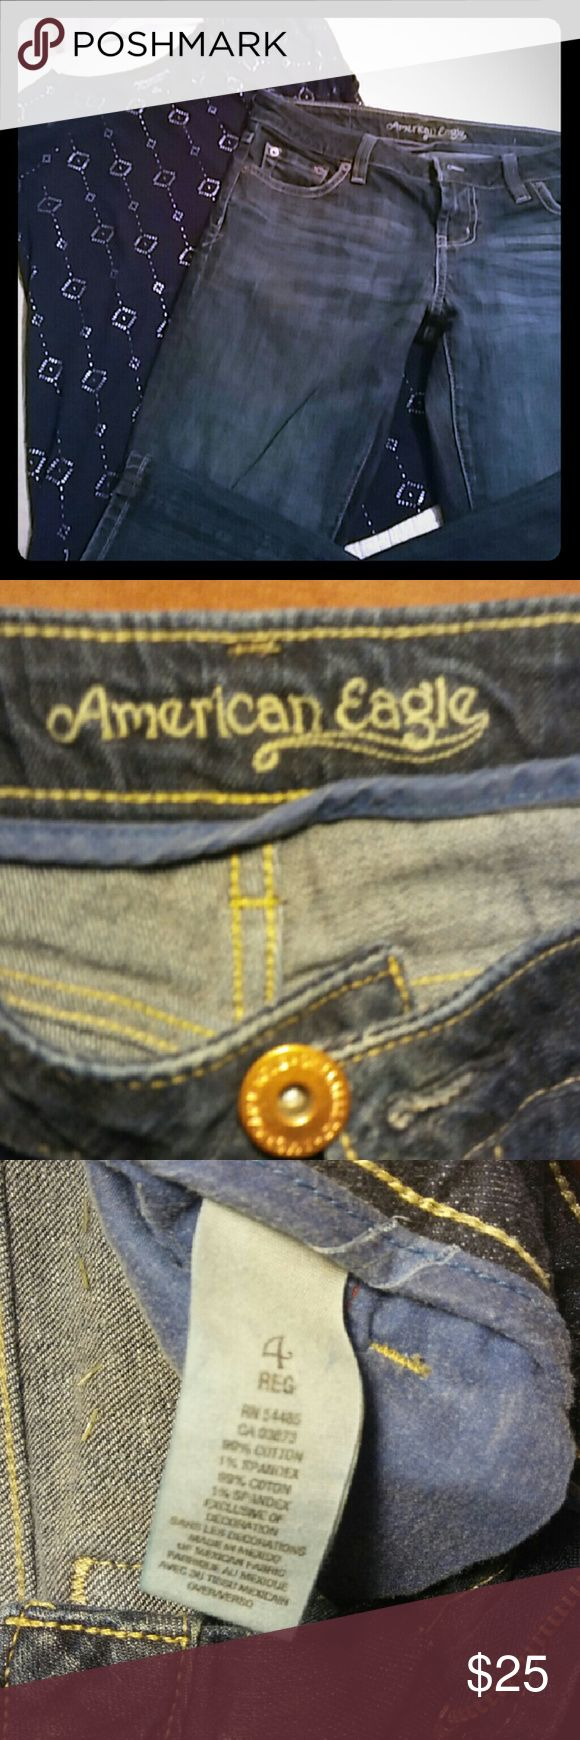 American Eagle Jeans American Eagle Hipster Jeans Size 4 Like new No holes, rips or tears American Eagle Outfitters Jeans